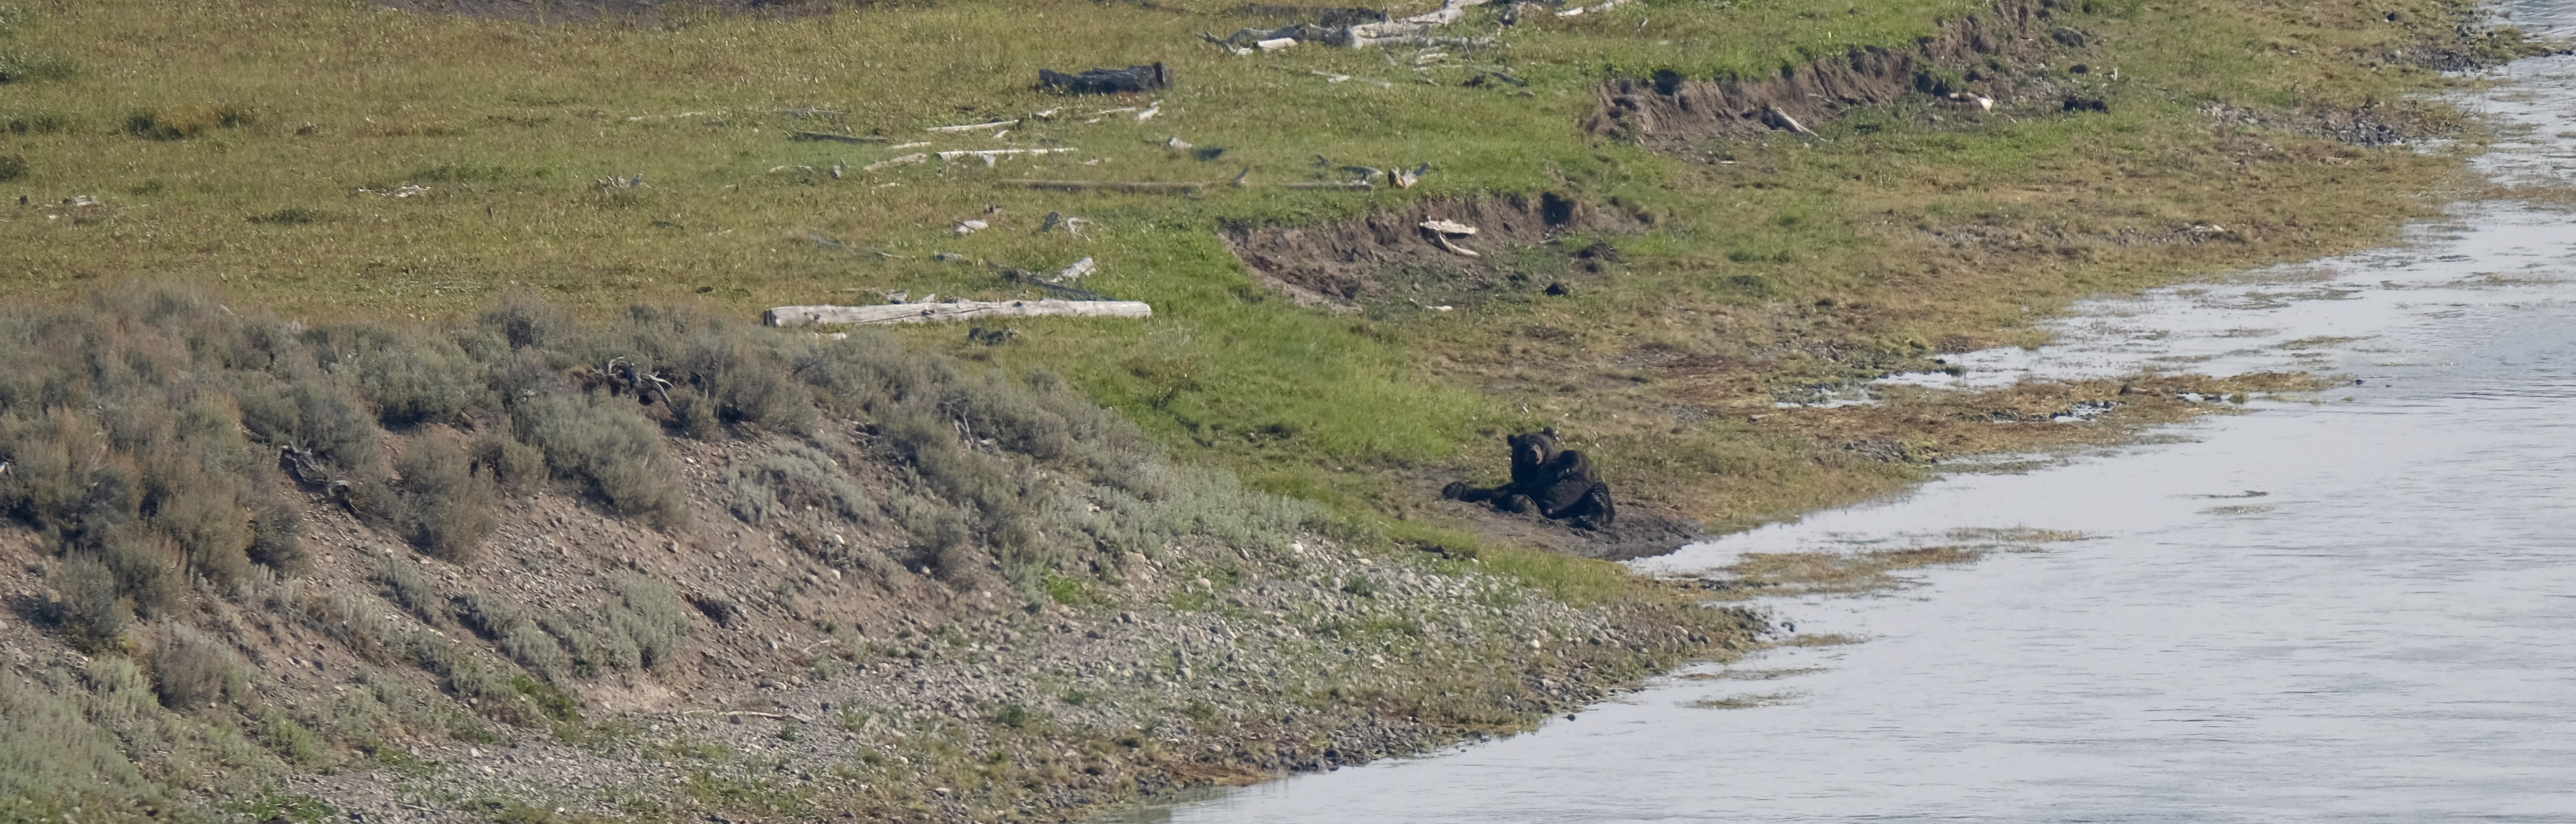 Yellowstone - Heyden Valley- Grizzly